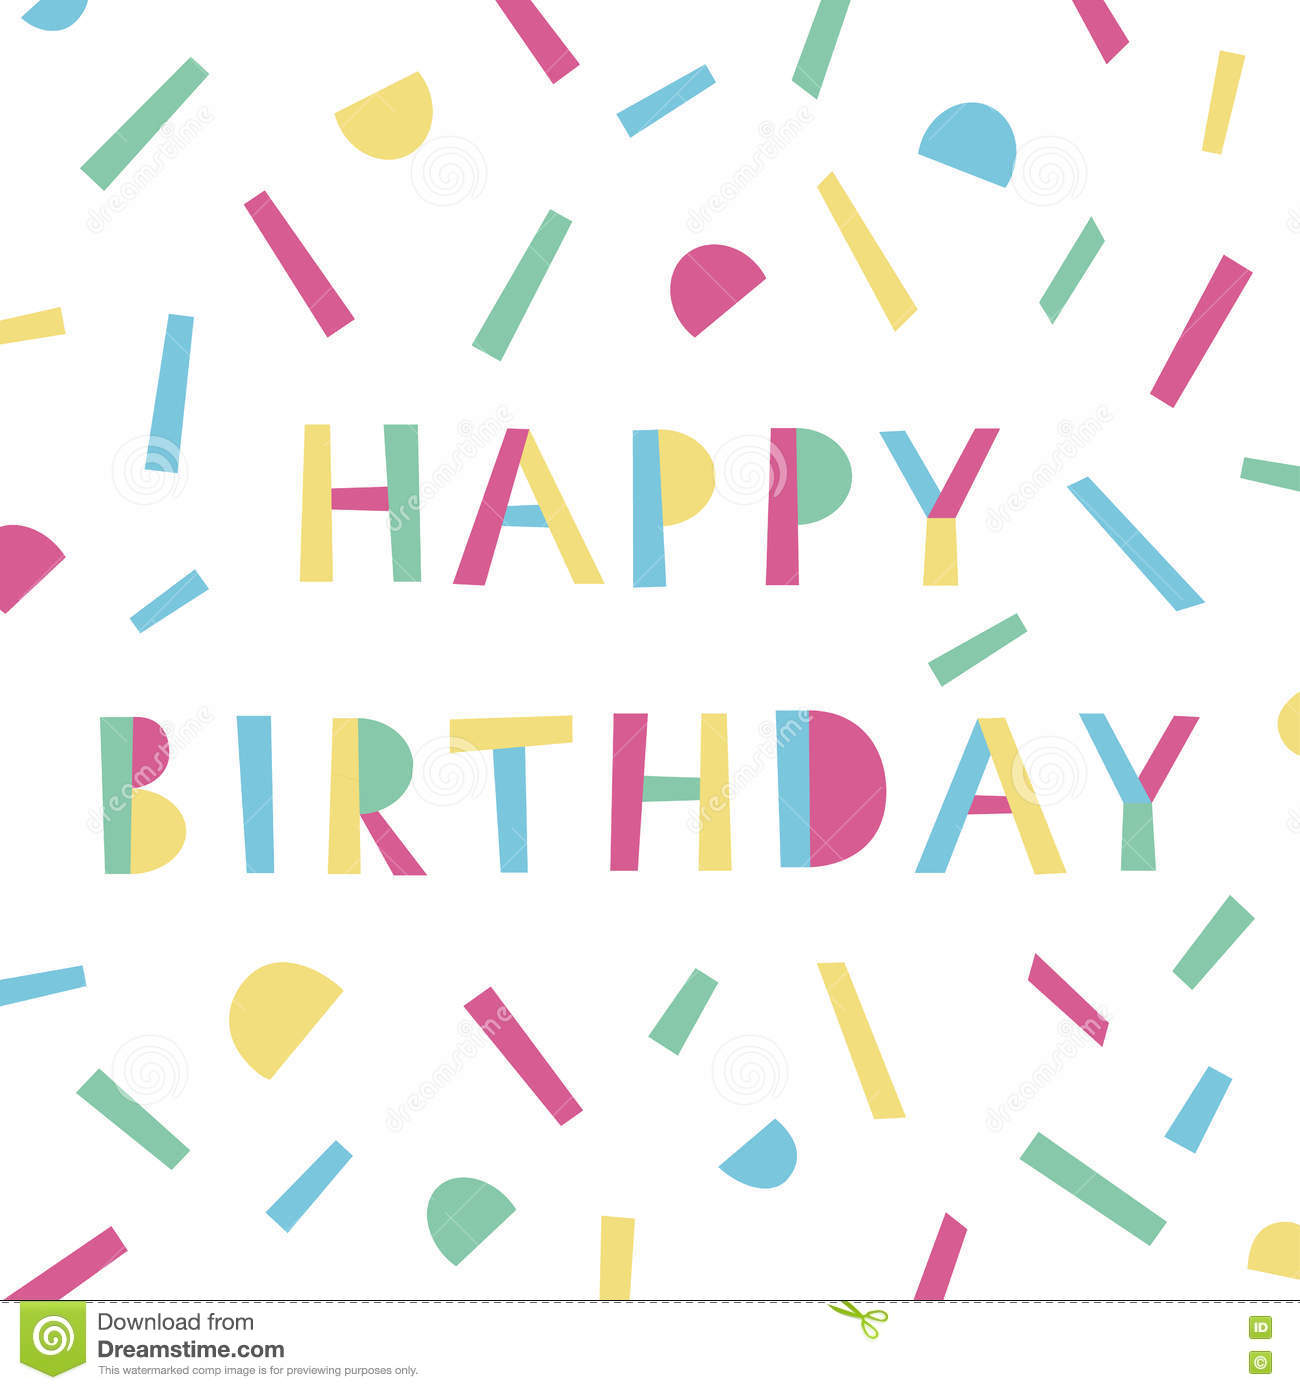 Happy Birthday Card In Memphis Style. Modern Colorful Template For ...